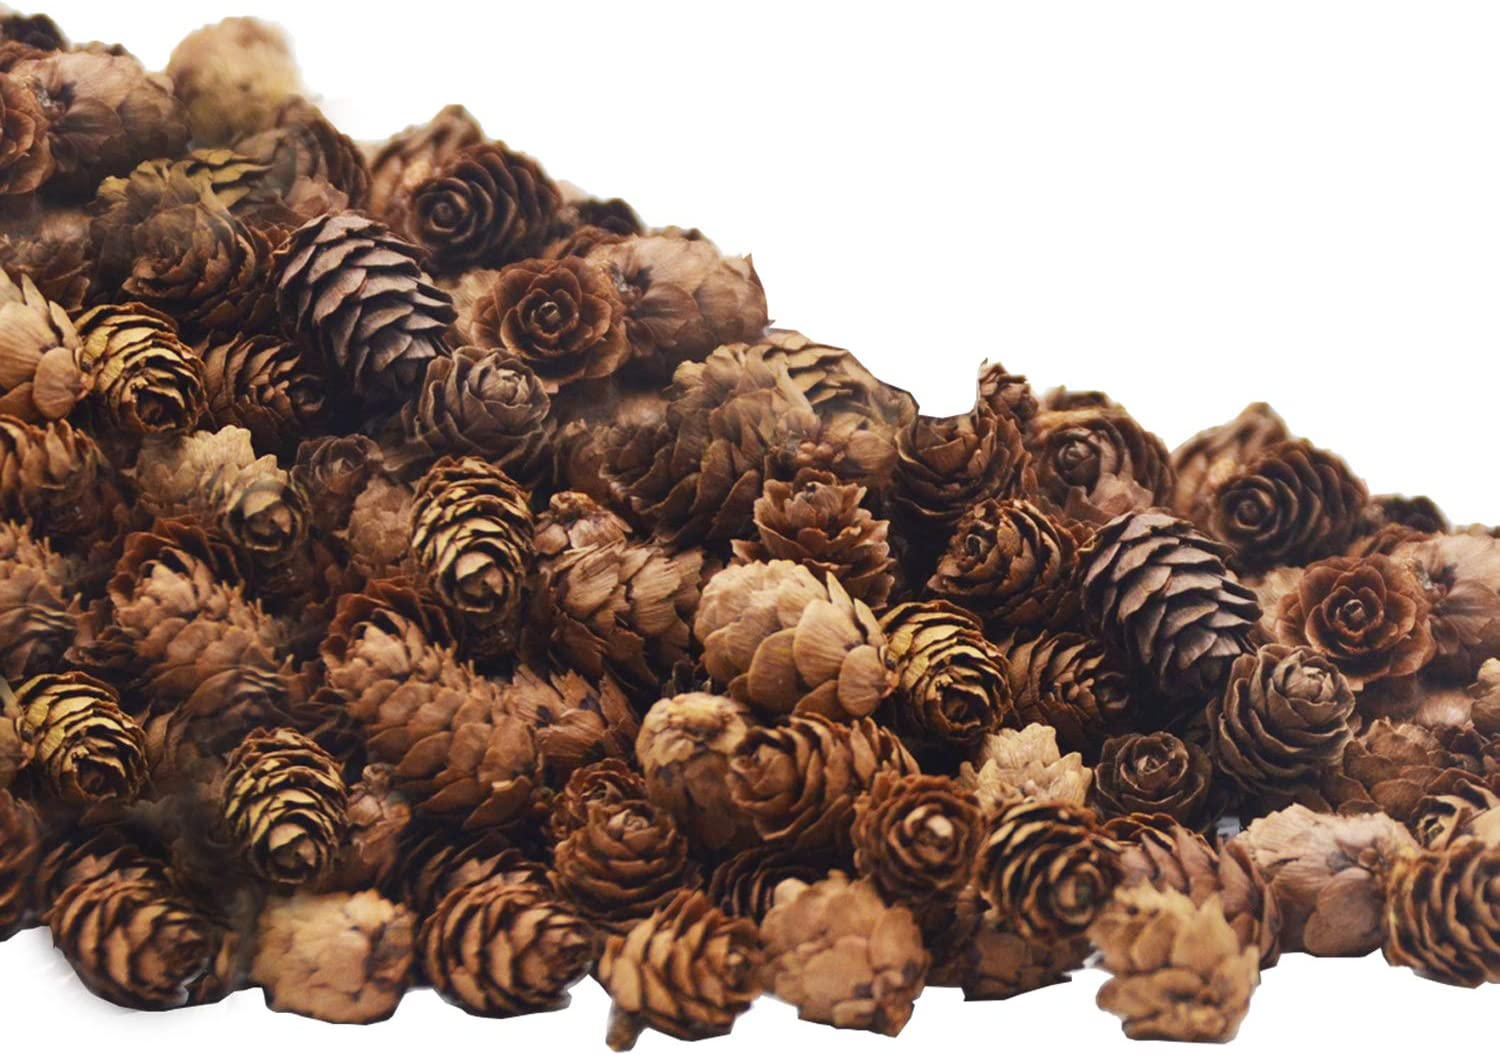 Deloky 150 PCS Christmas Natural Mini Pine Cones- 3CM Thanksgiving Pinecones Ornaments Vase Fillers for DIY Crafts, Home Decorations,Fall and Christmas,Wedding Decor